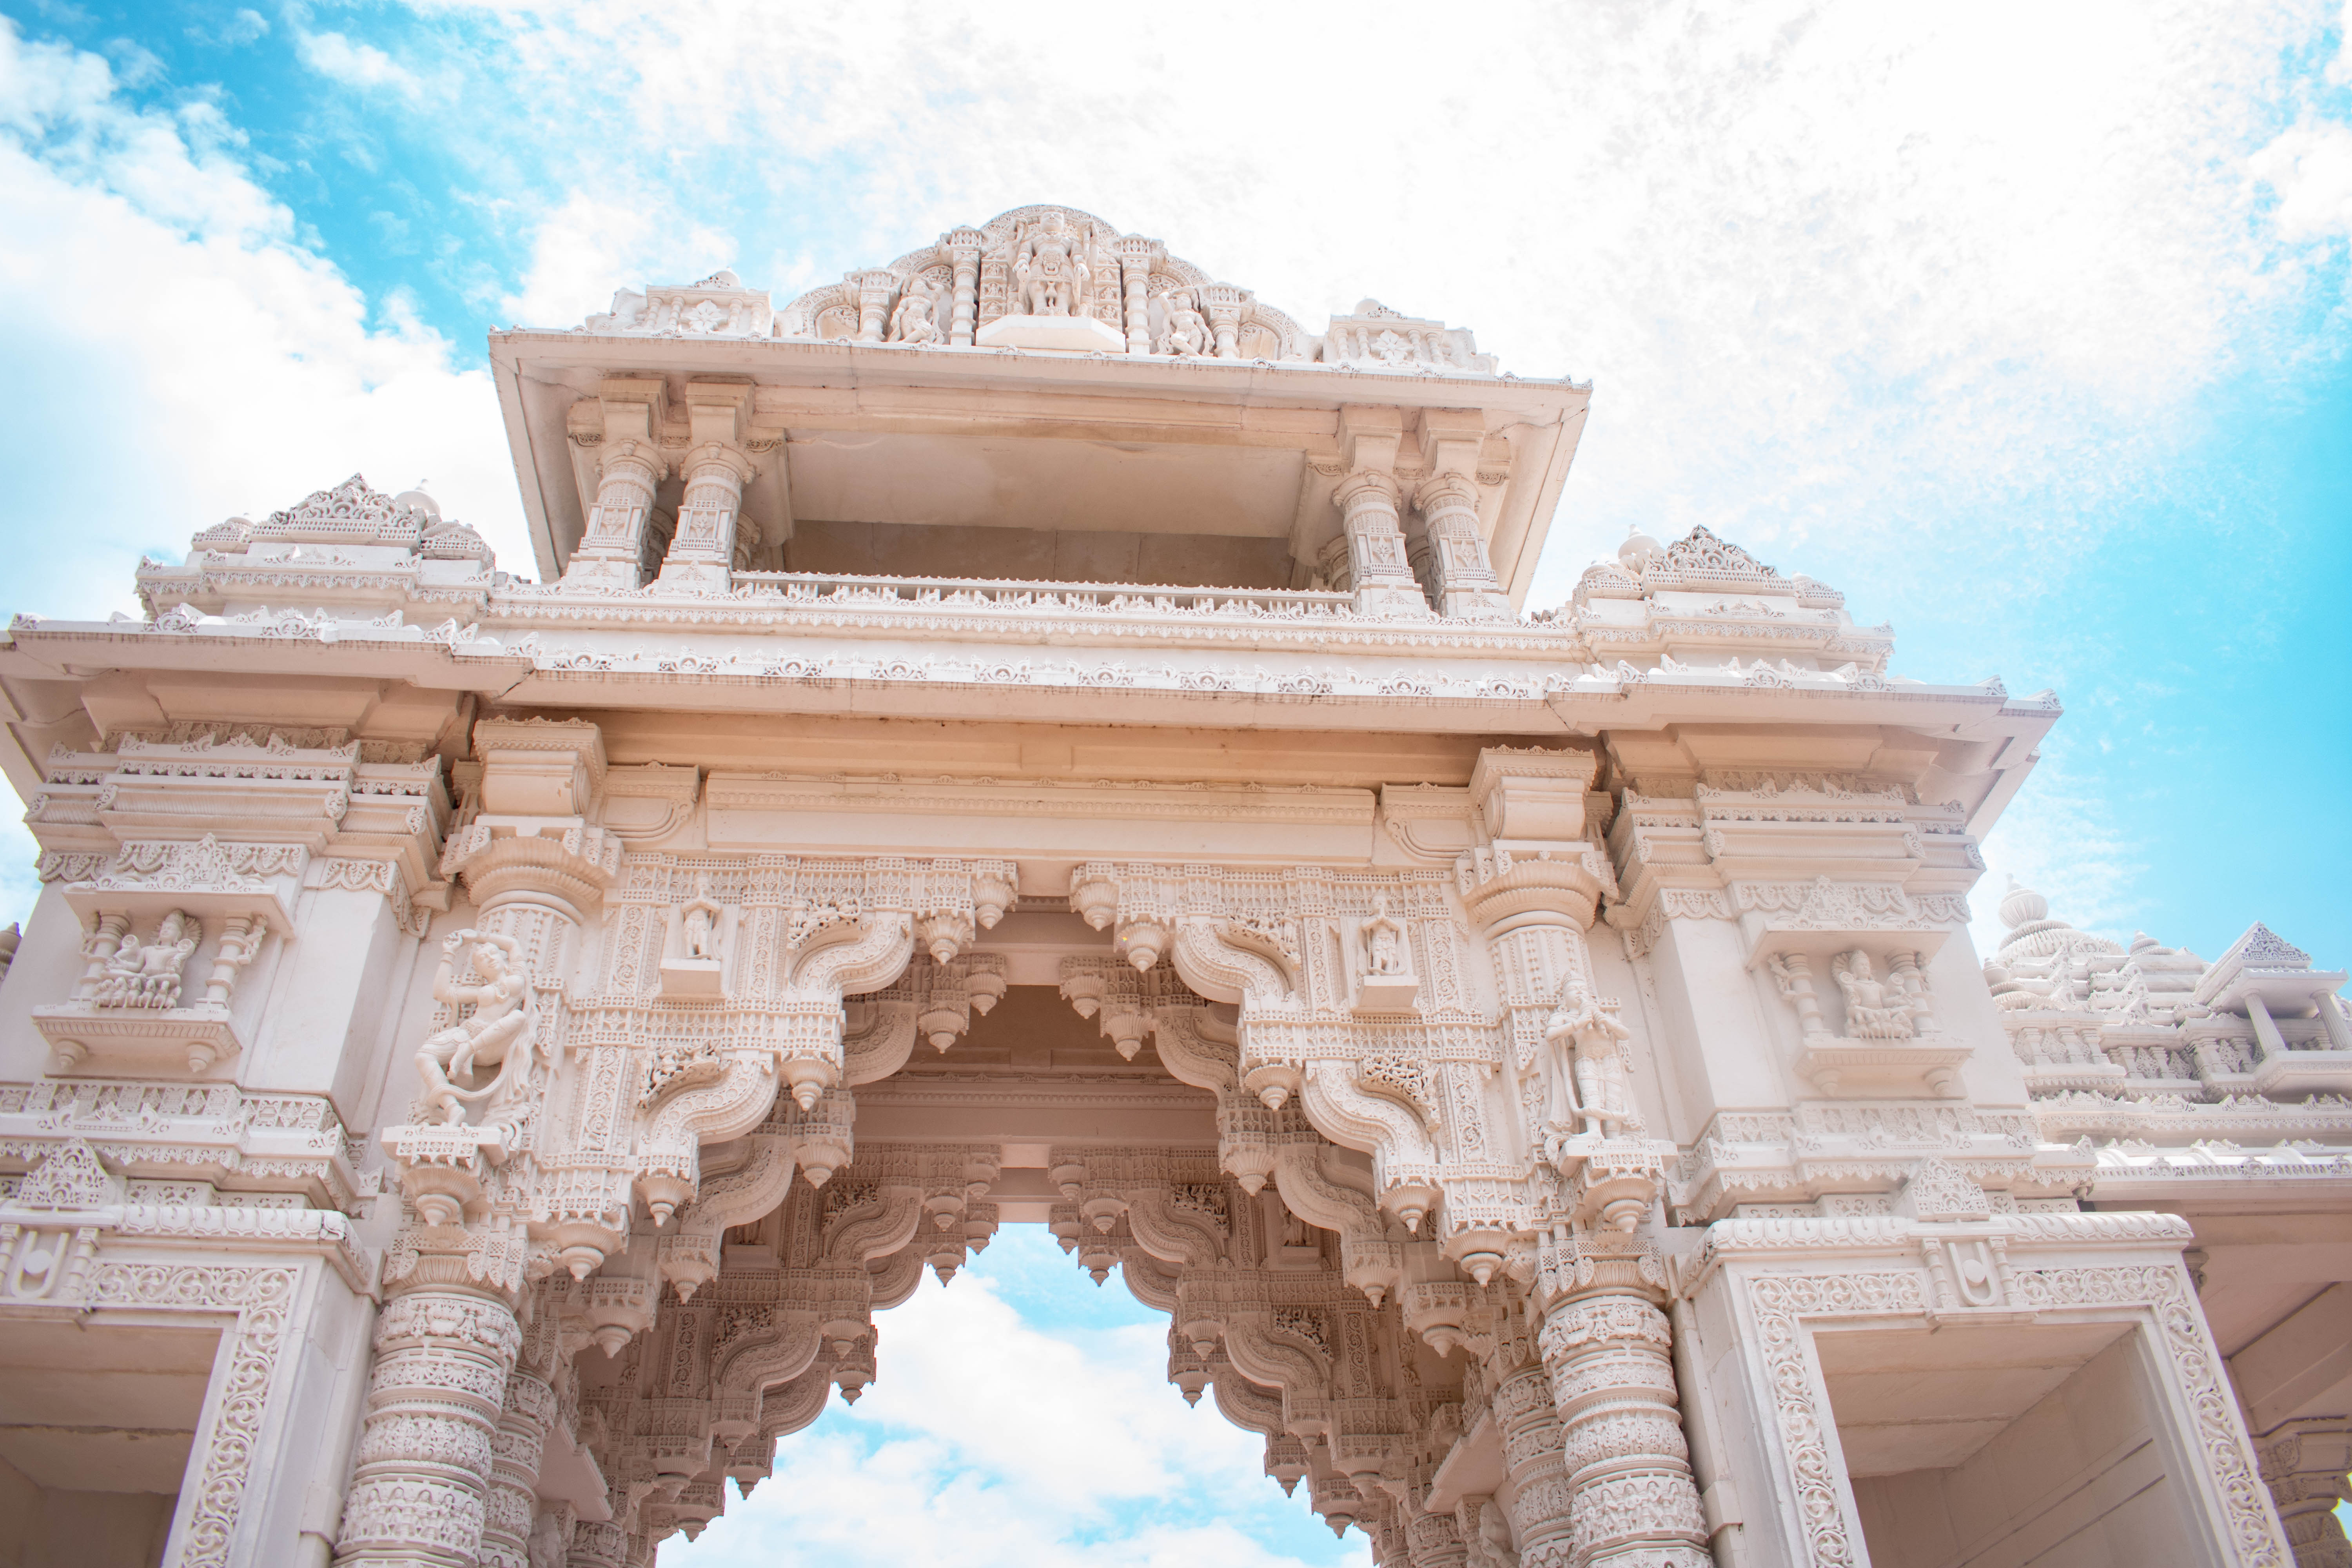 baps shri swaminarayan mandir hindu temple bartlett illinois chicago indian architecture